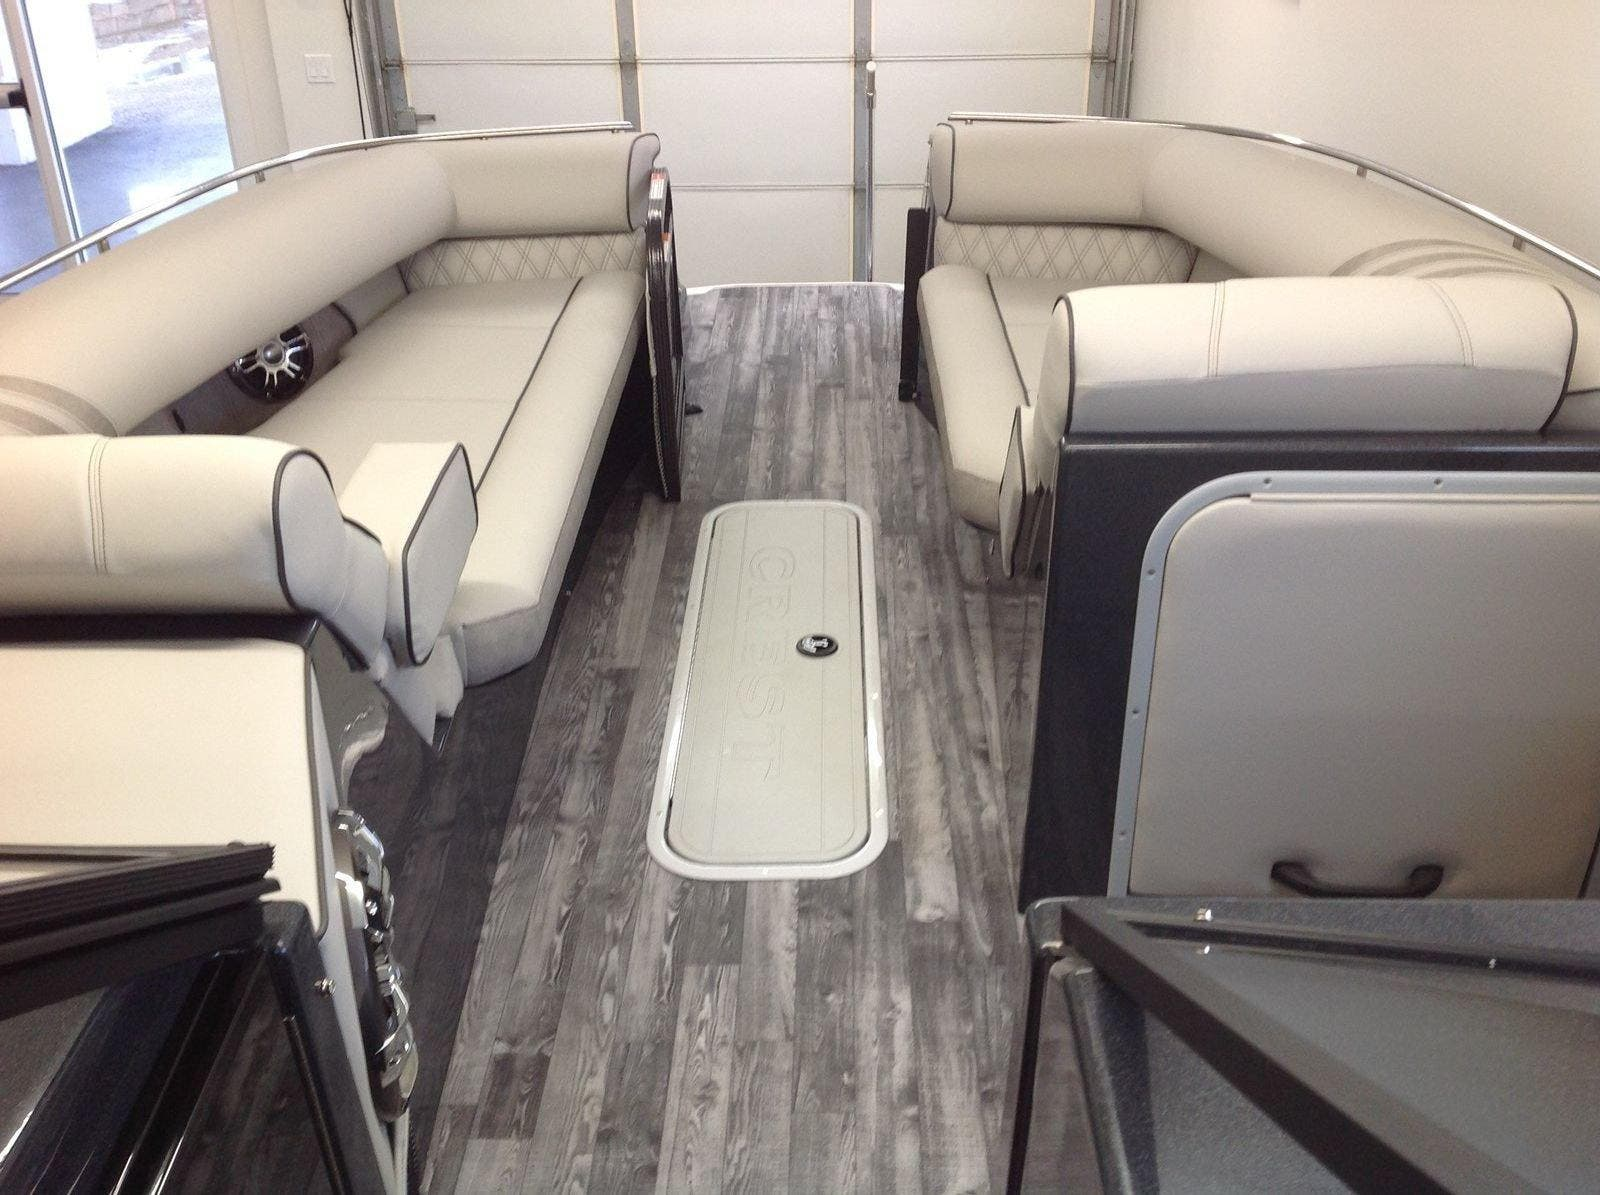 2020 Crest boat for sale, model of the boat is Continental 270sls & Image # 3 of 15